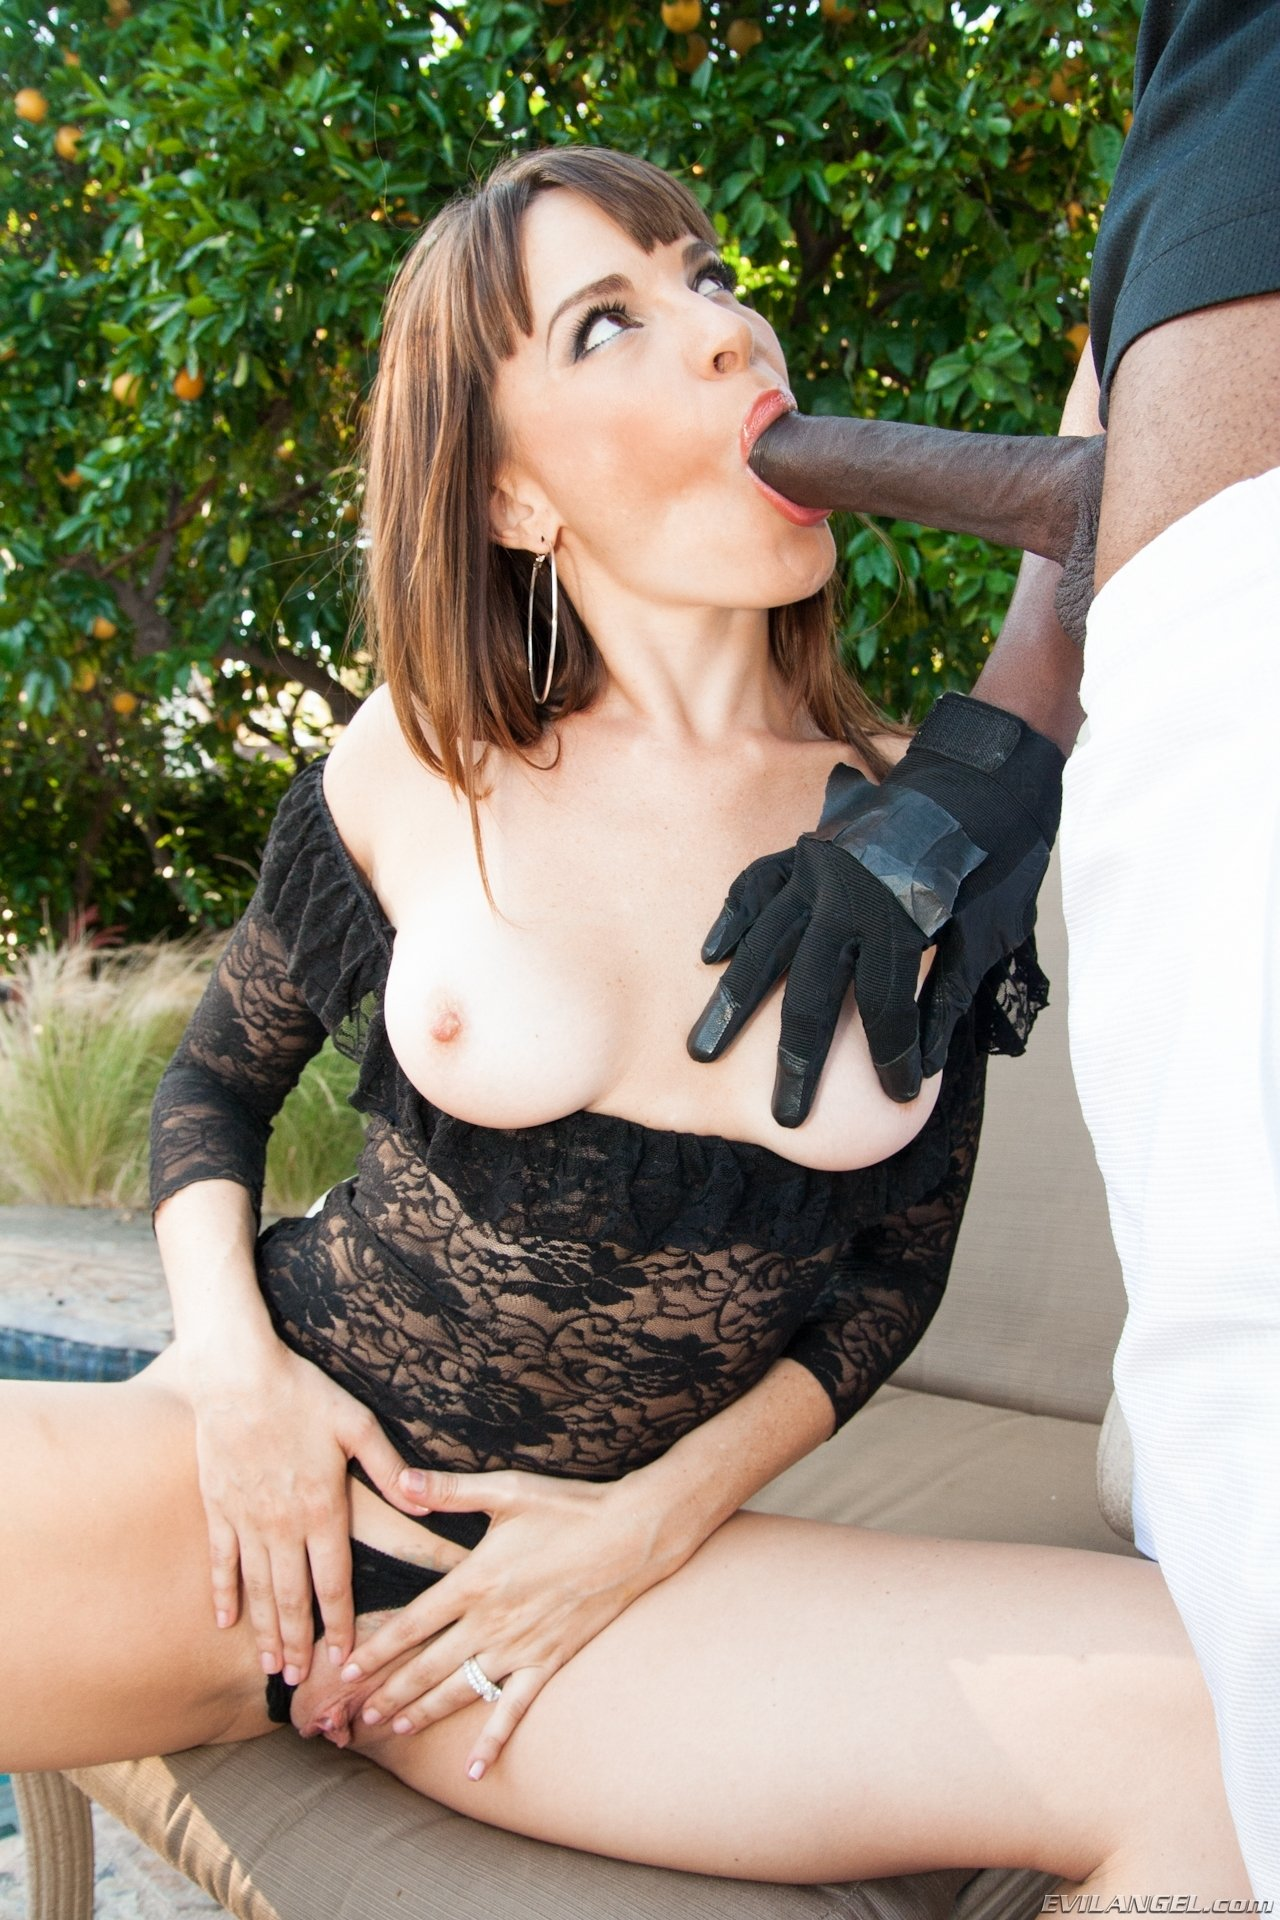 Sara luvv anal interracial Mom and son sex chating father